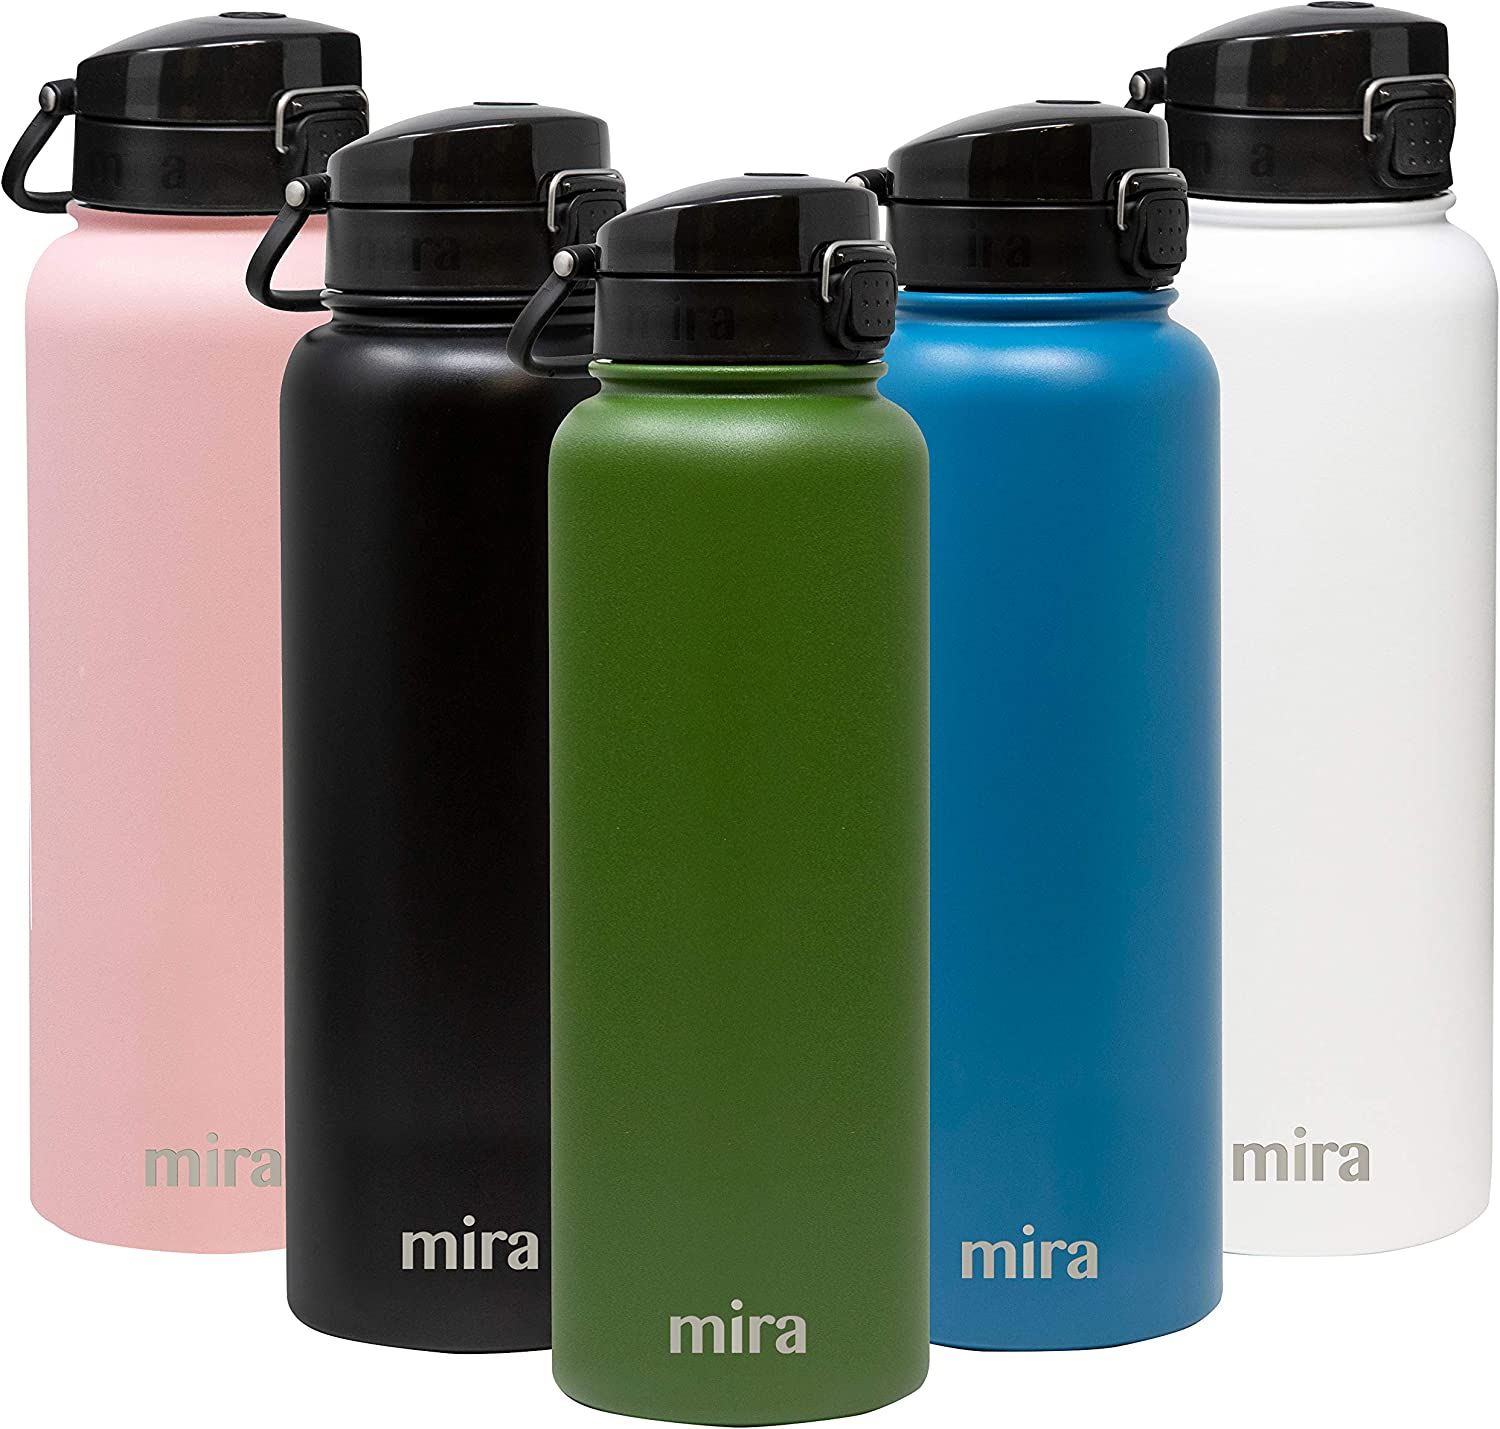 MIRA 40 oz Stainless Steel Water Bottle - Hydro Vacuum Insulated Metal Thermos Flask Keeps Cold for 24 Hours, Hot for 12 Hours - BPA-Free One Touch Spout Lid Cap - Olive Green